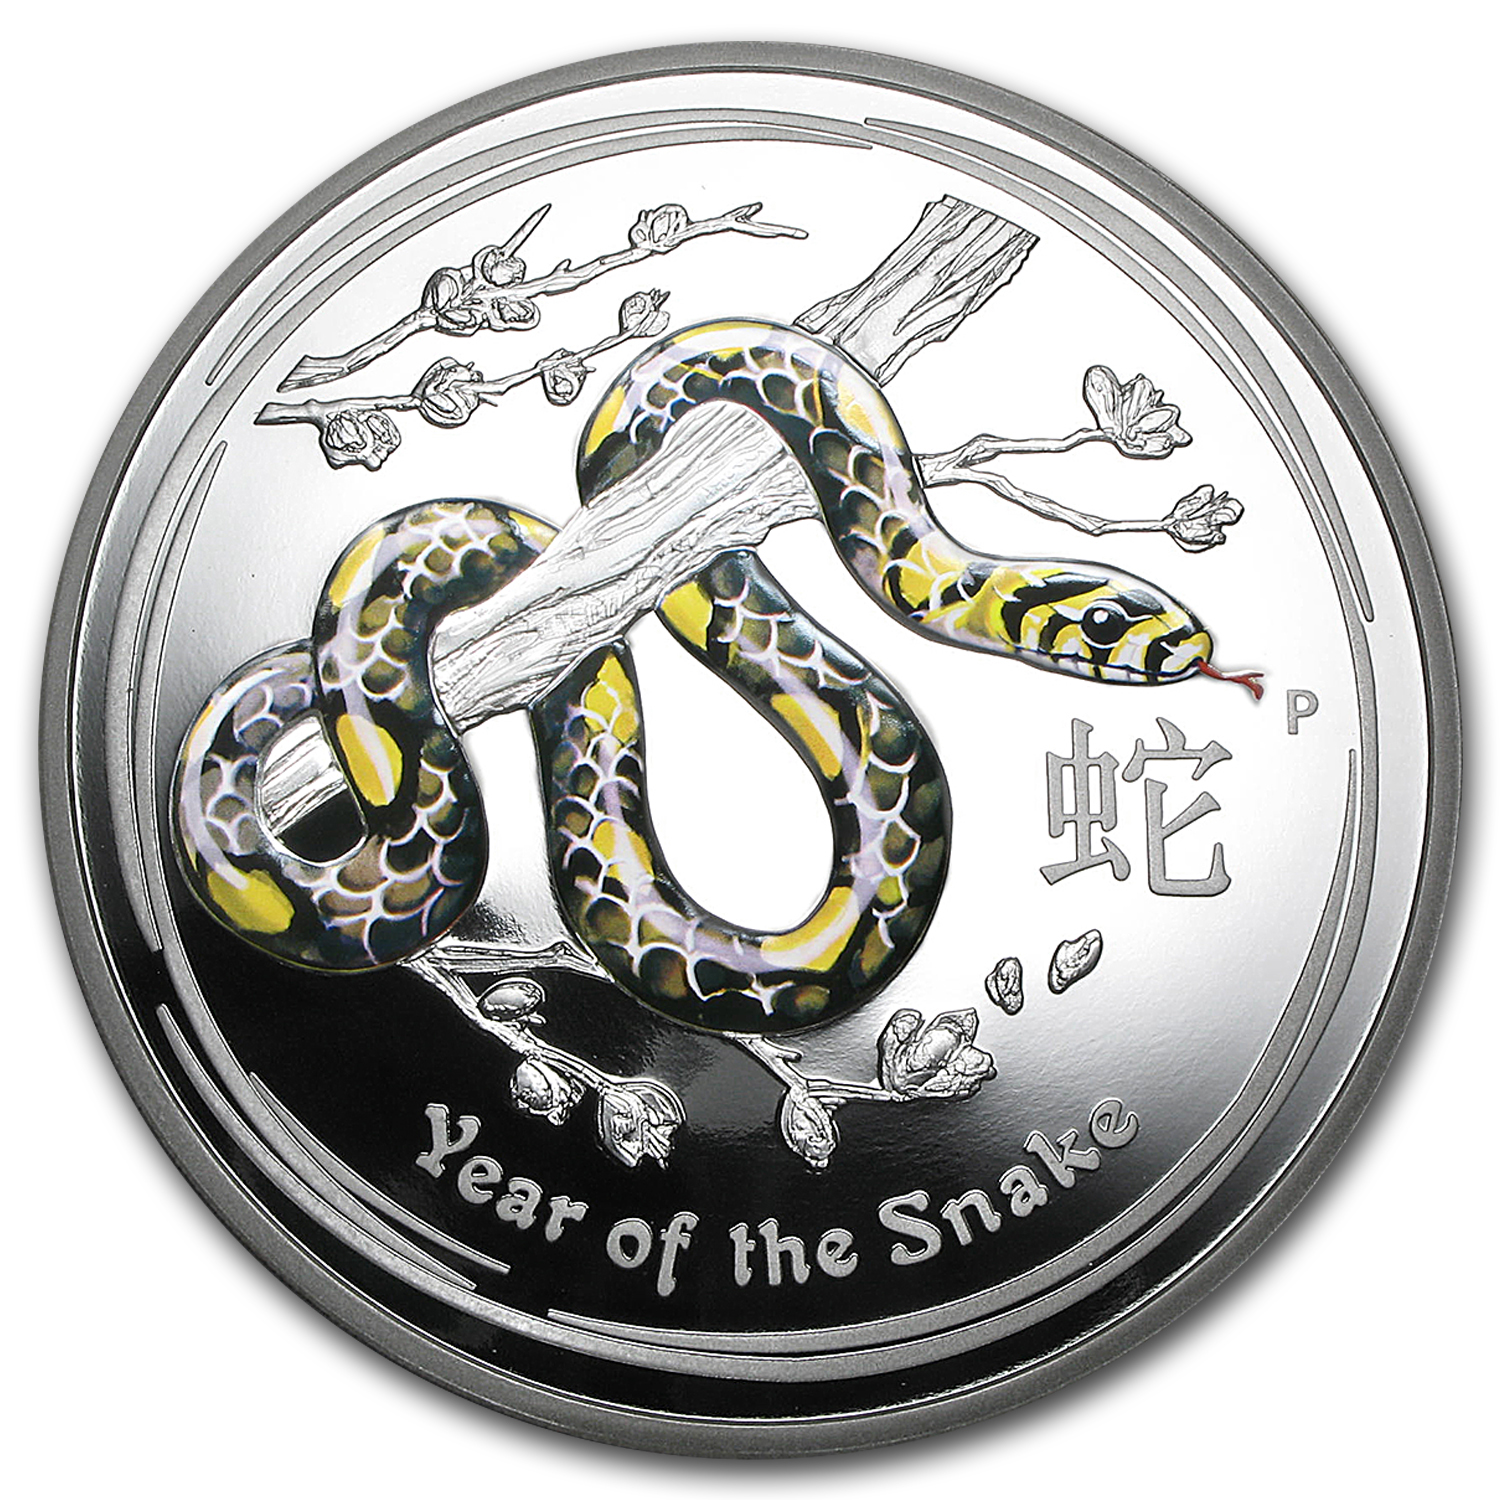 2013 Australia 1 kilo Silver Year of the Snake BU (Colorized)